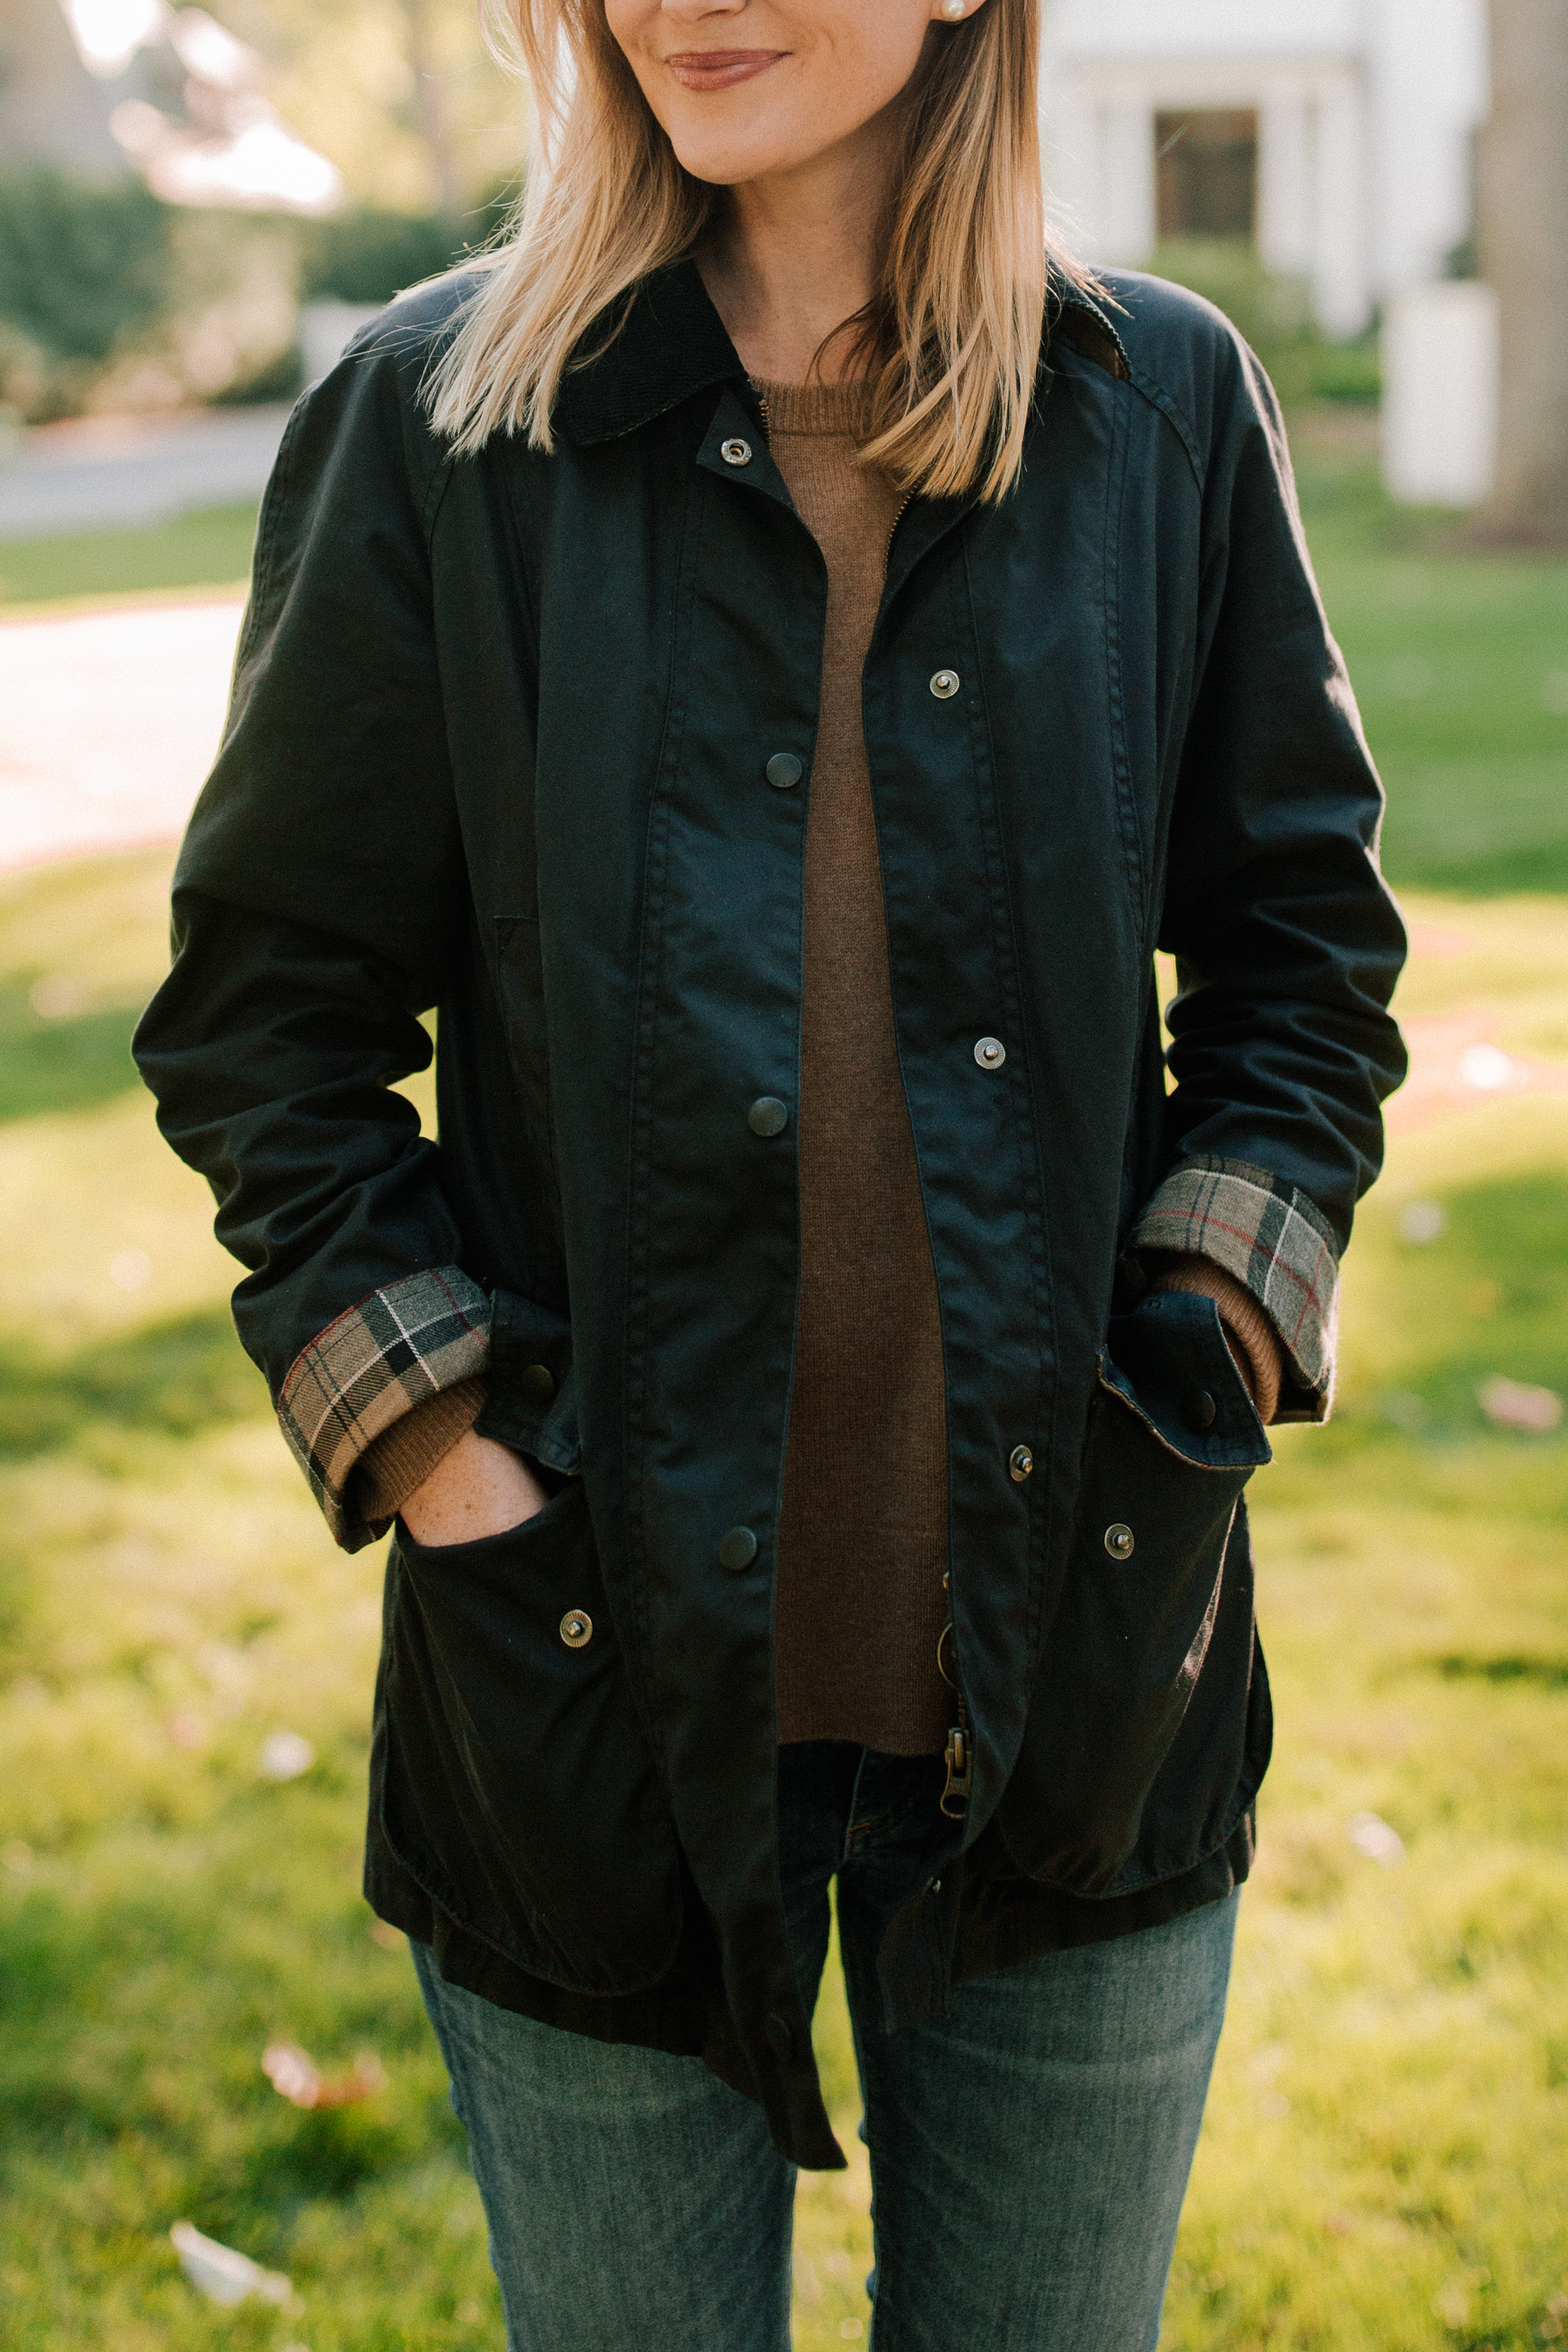 Barbour Jacket / Burberry Scarf  / Cashmere Sweate - Kelly in the City